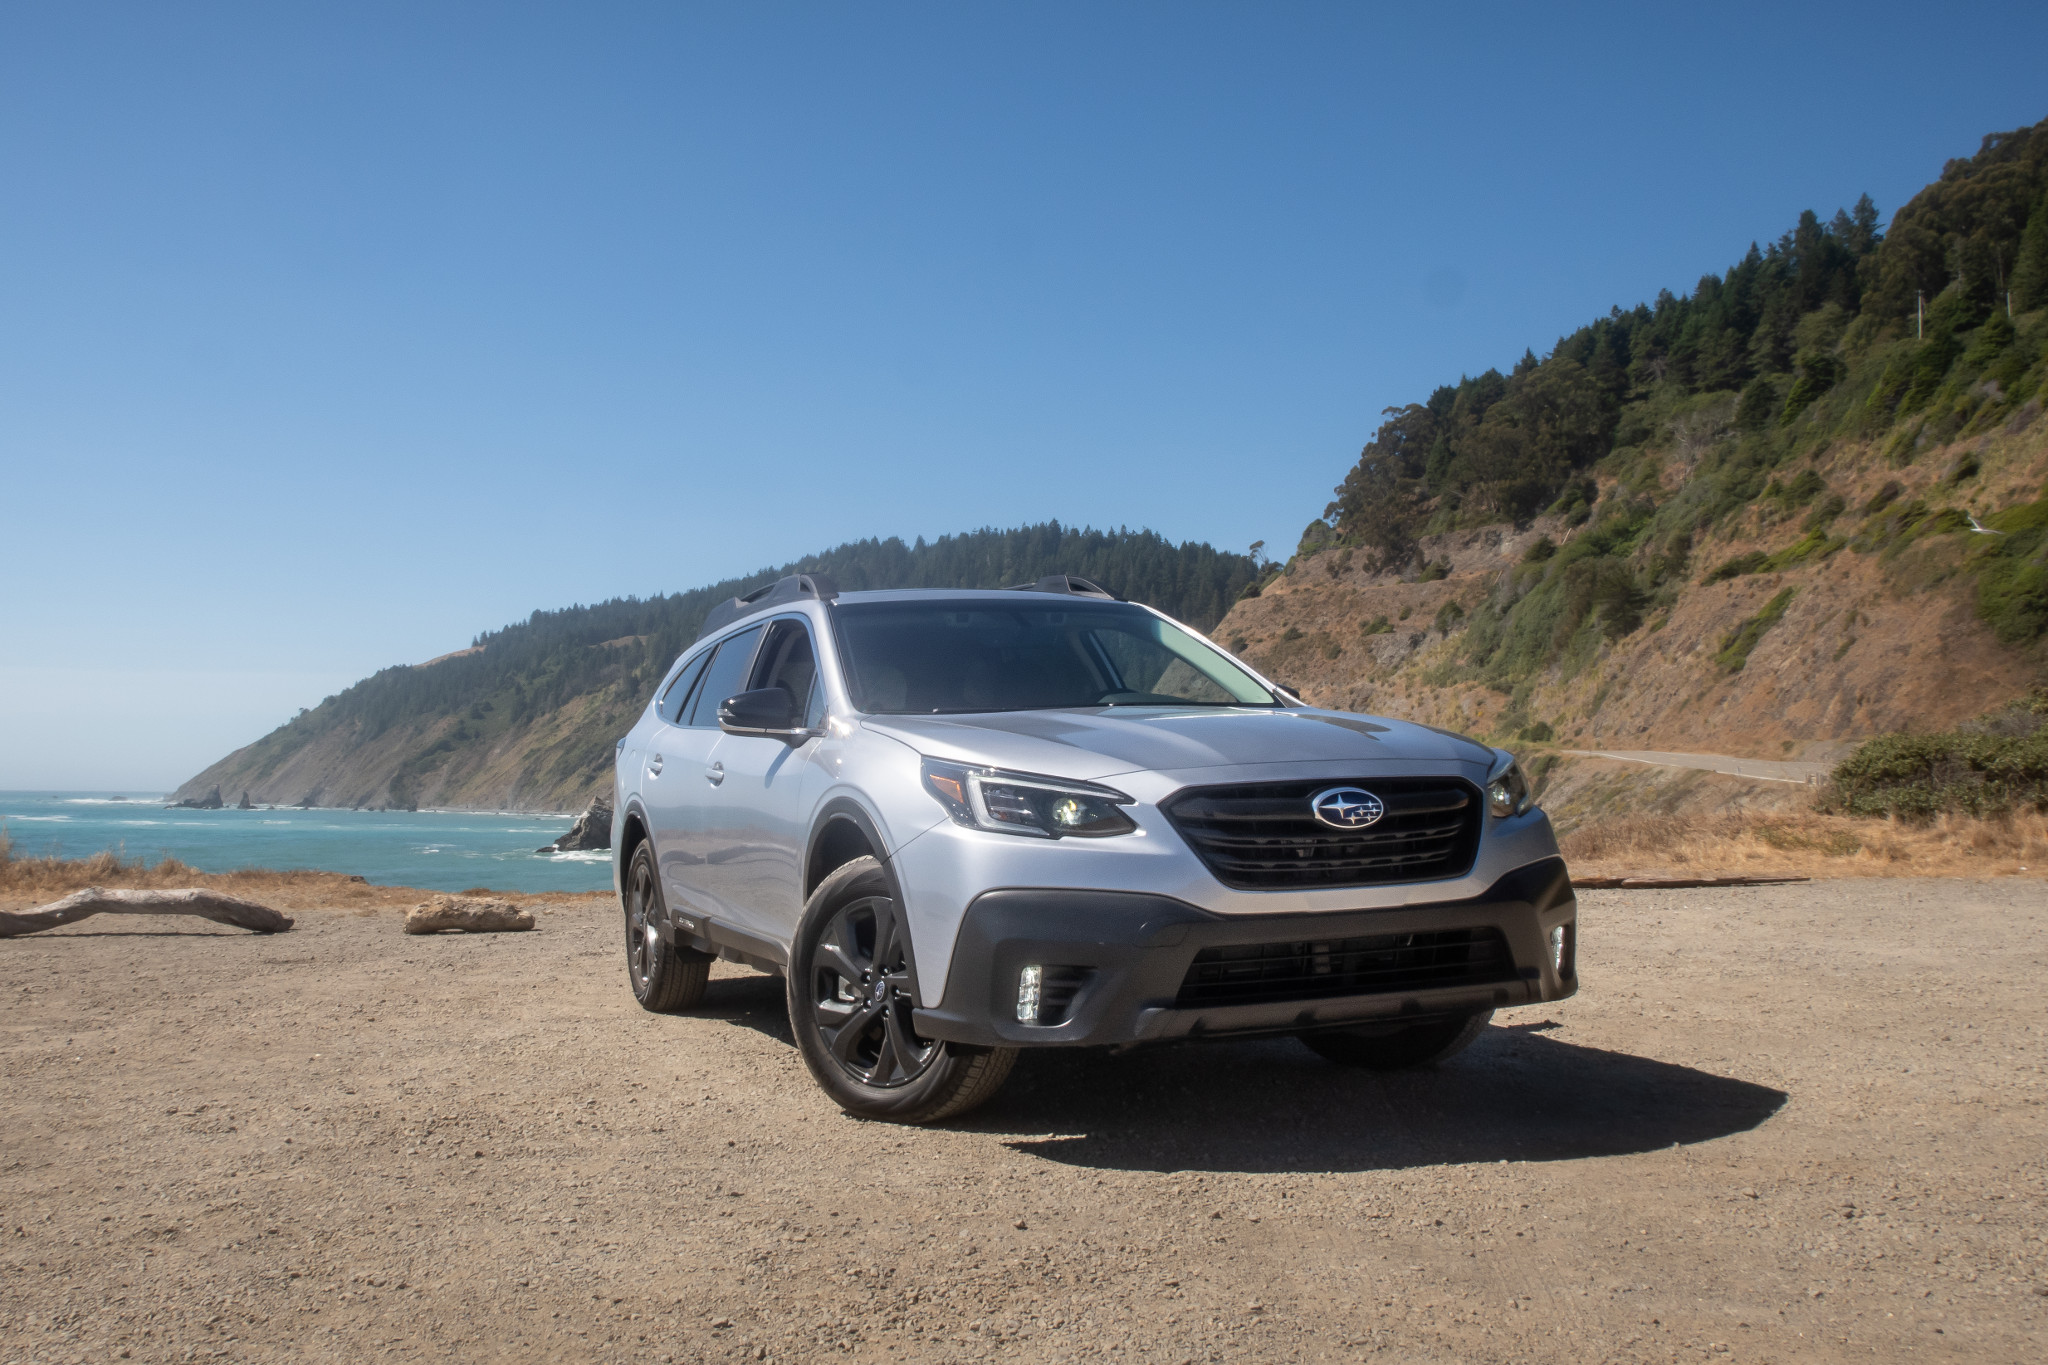 2020 Subaru Outback Review: Punching Above Its Weight Class